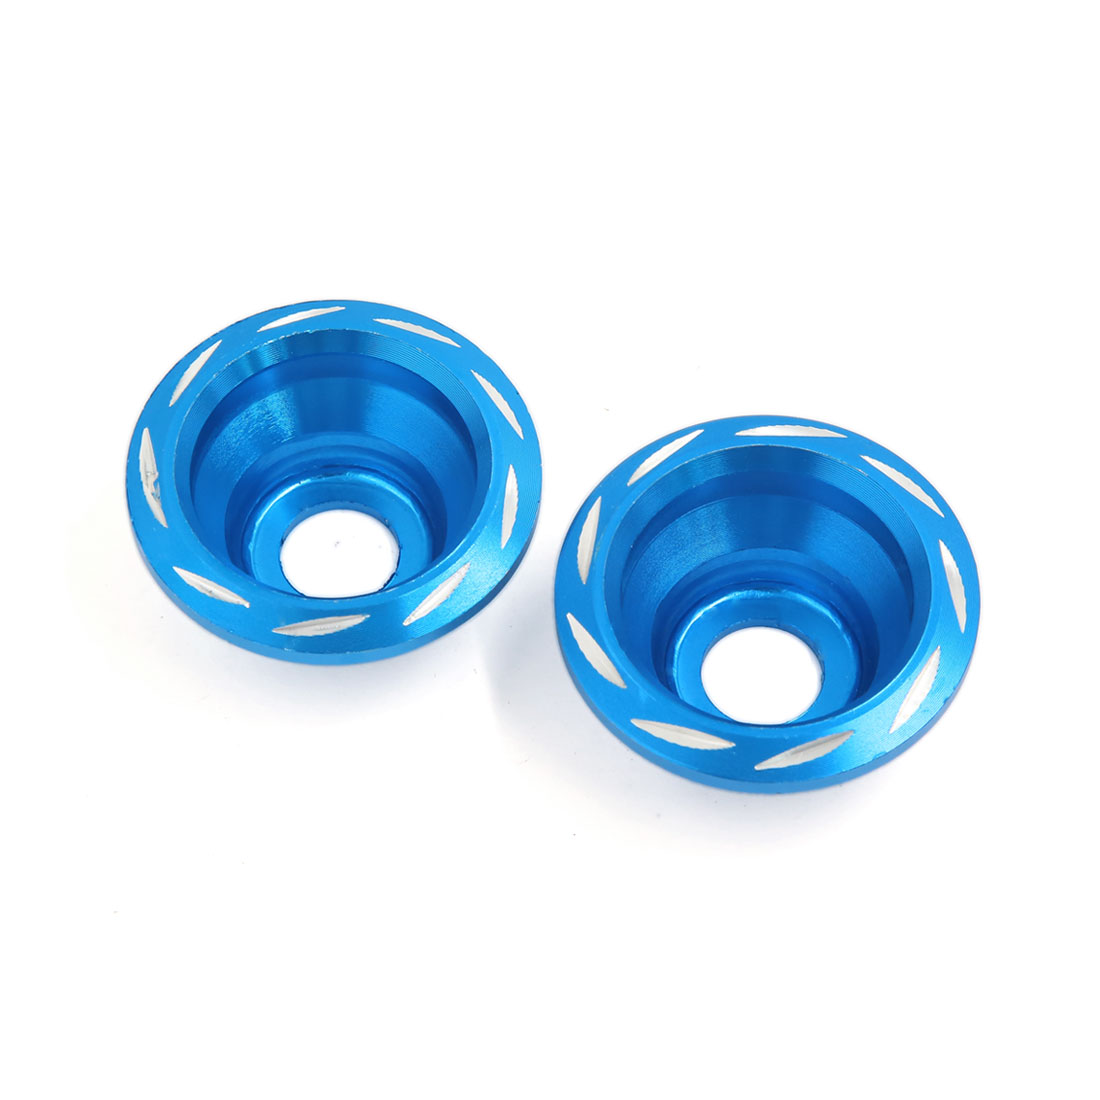 Aluminum Alloy Motorcycle Fork Cup Front Wheel Drop Resistance Cups Blue 2pcs